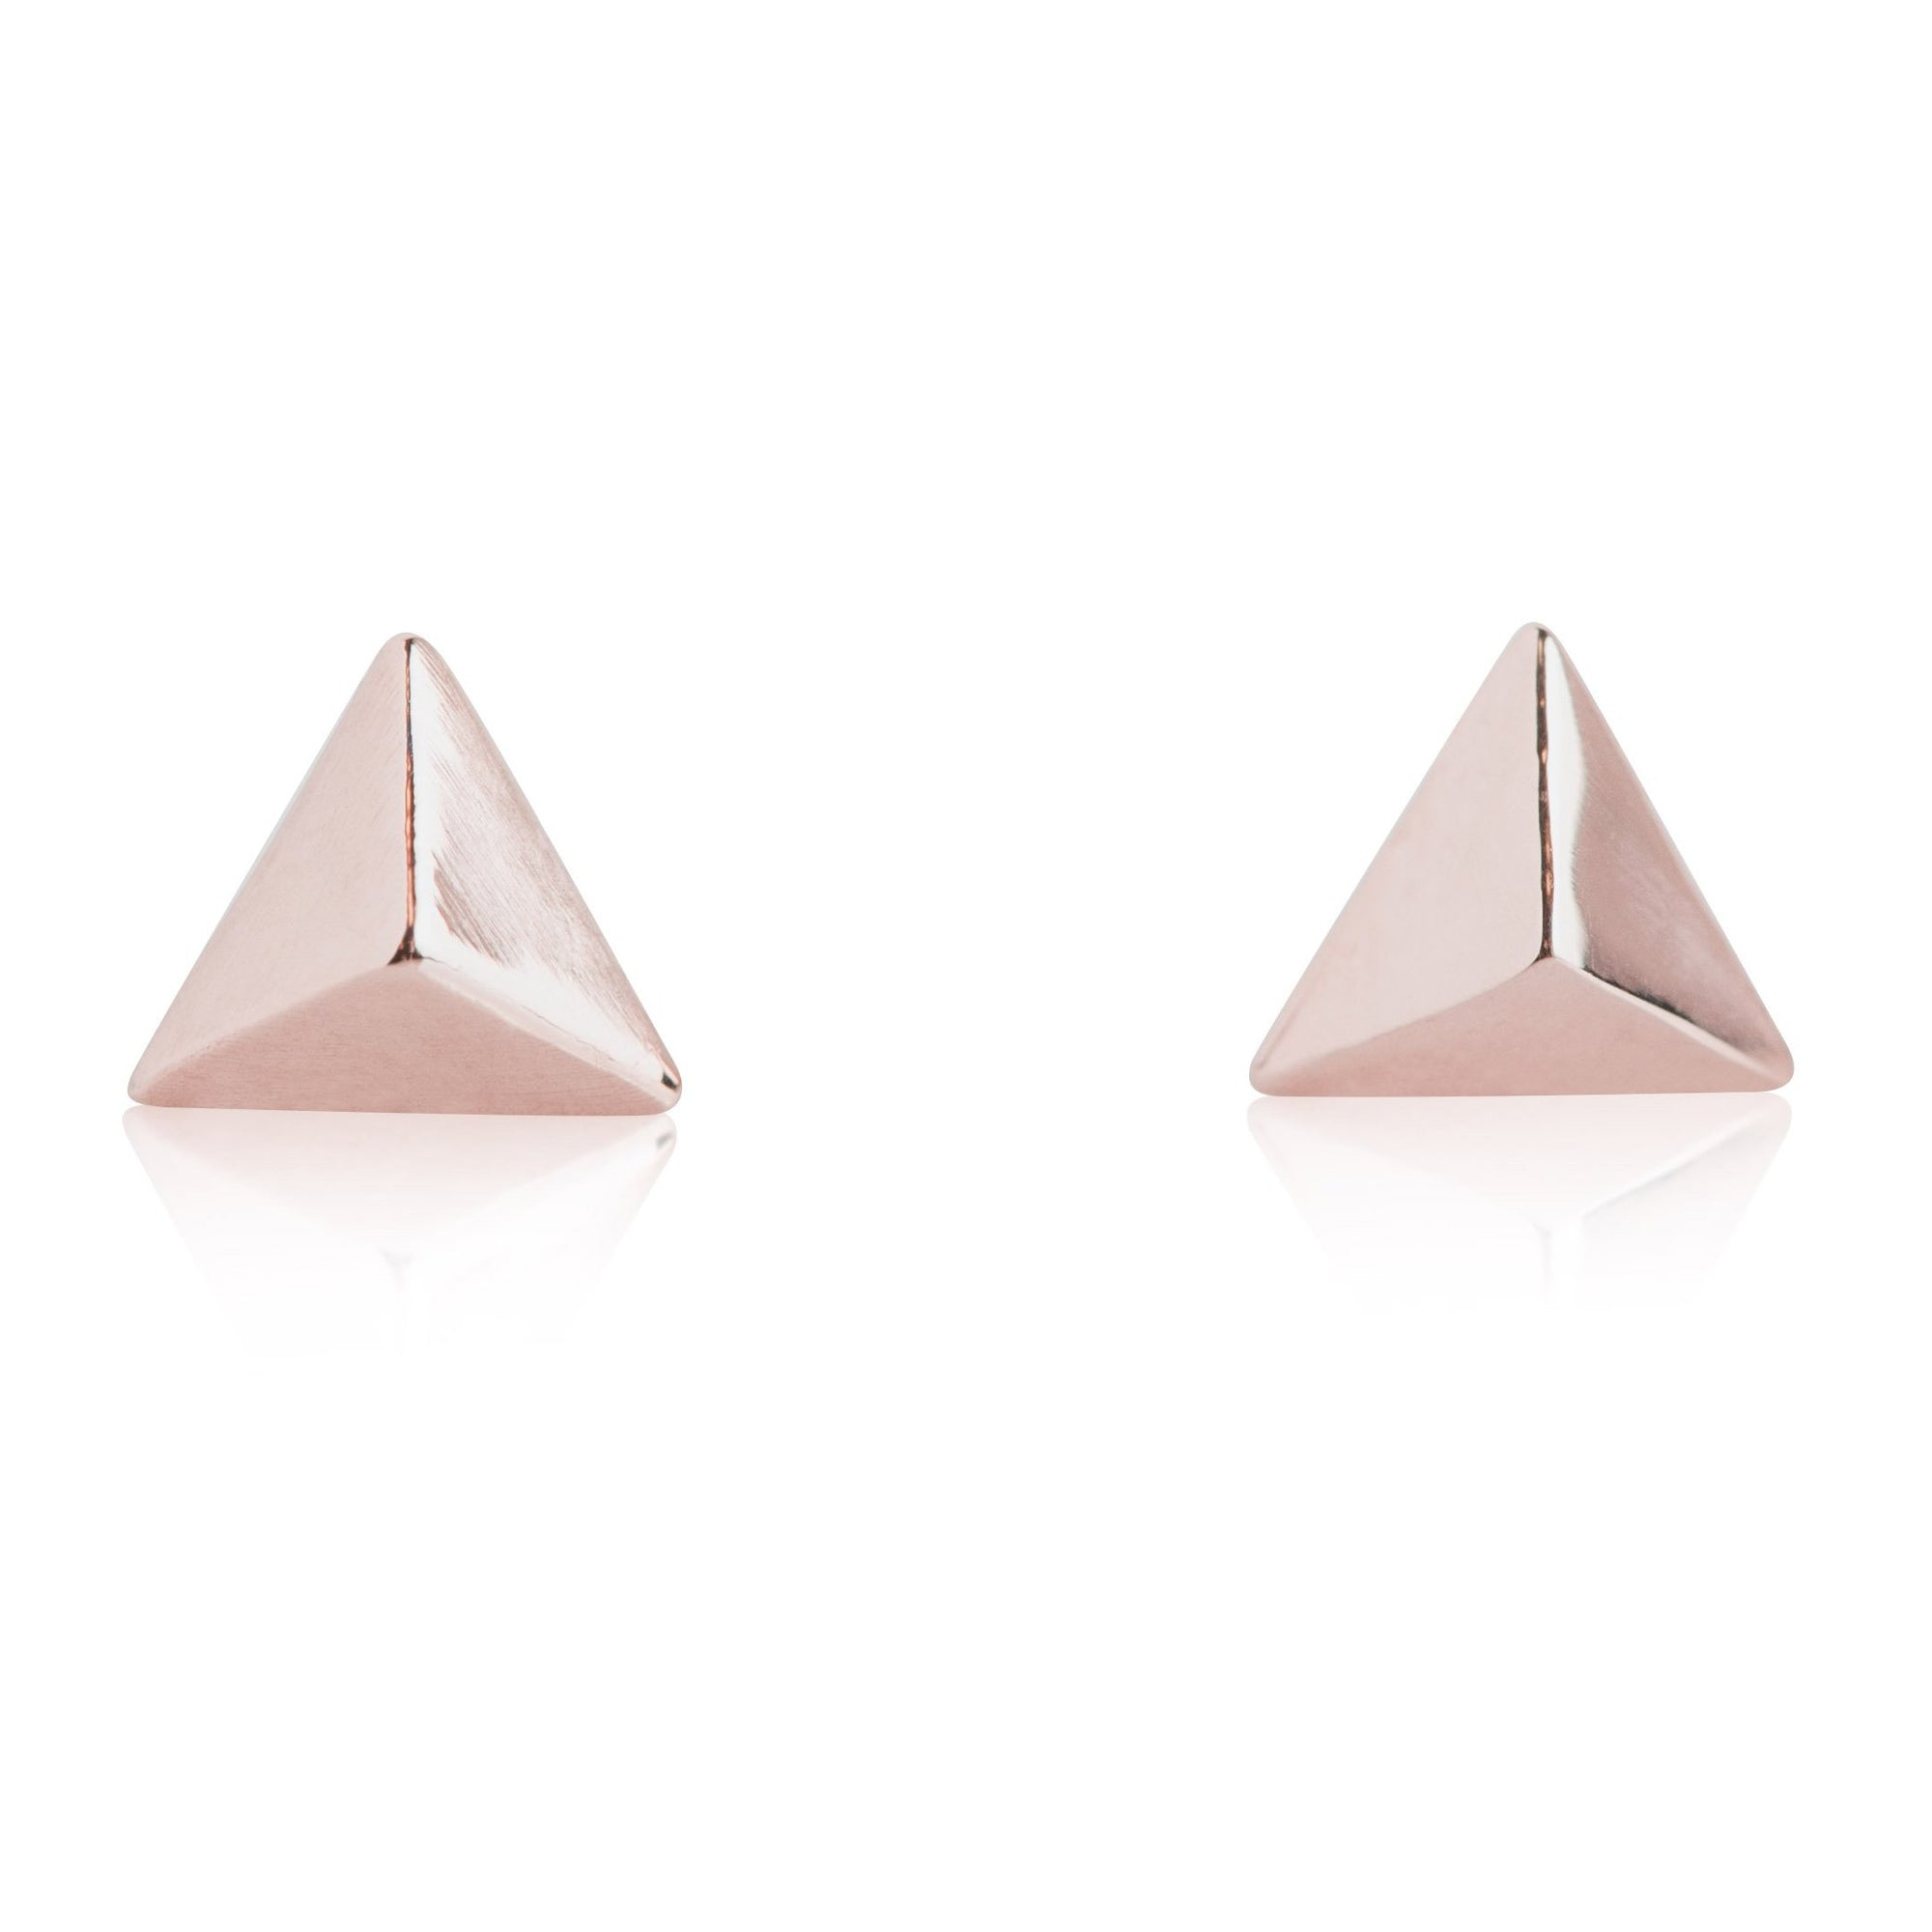 14 KARAT YELLOW, ROSE, OR WHITE GOLD PYRAMID STUD EARRINGS